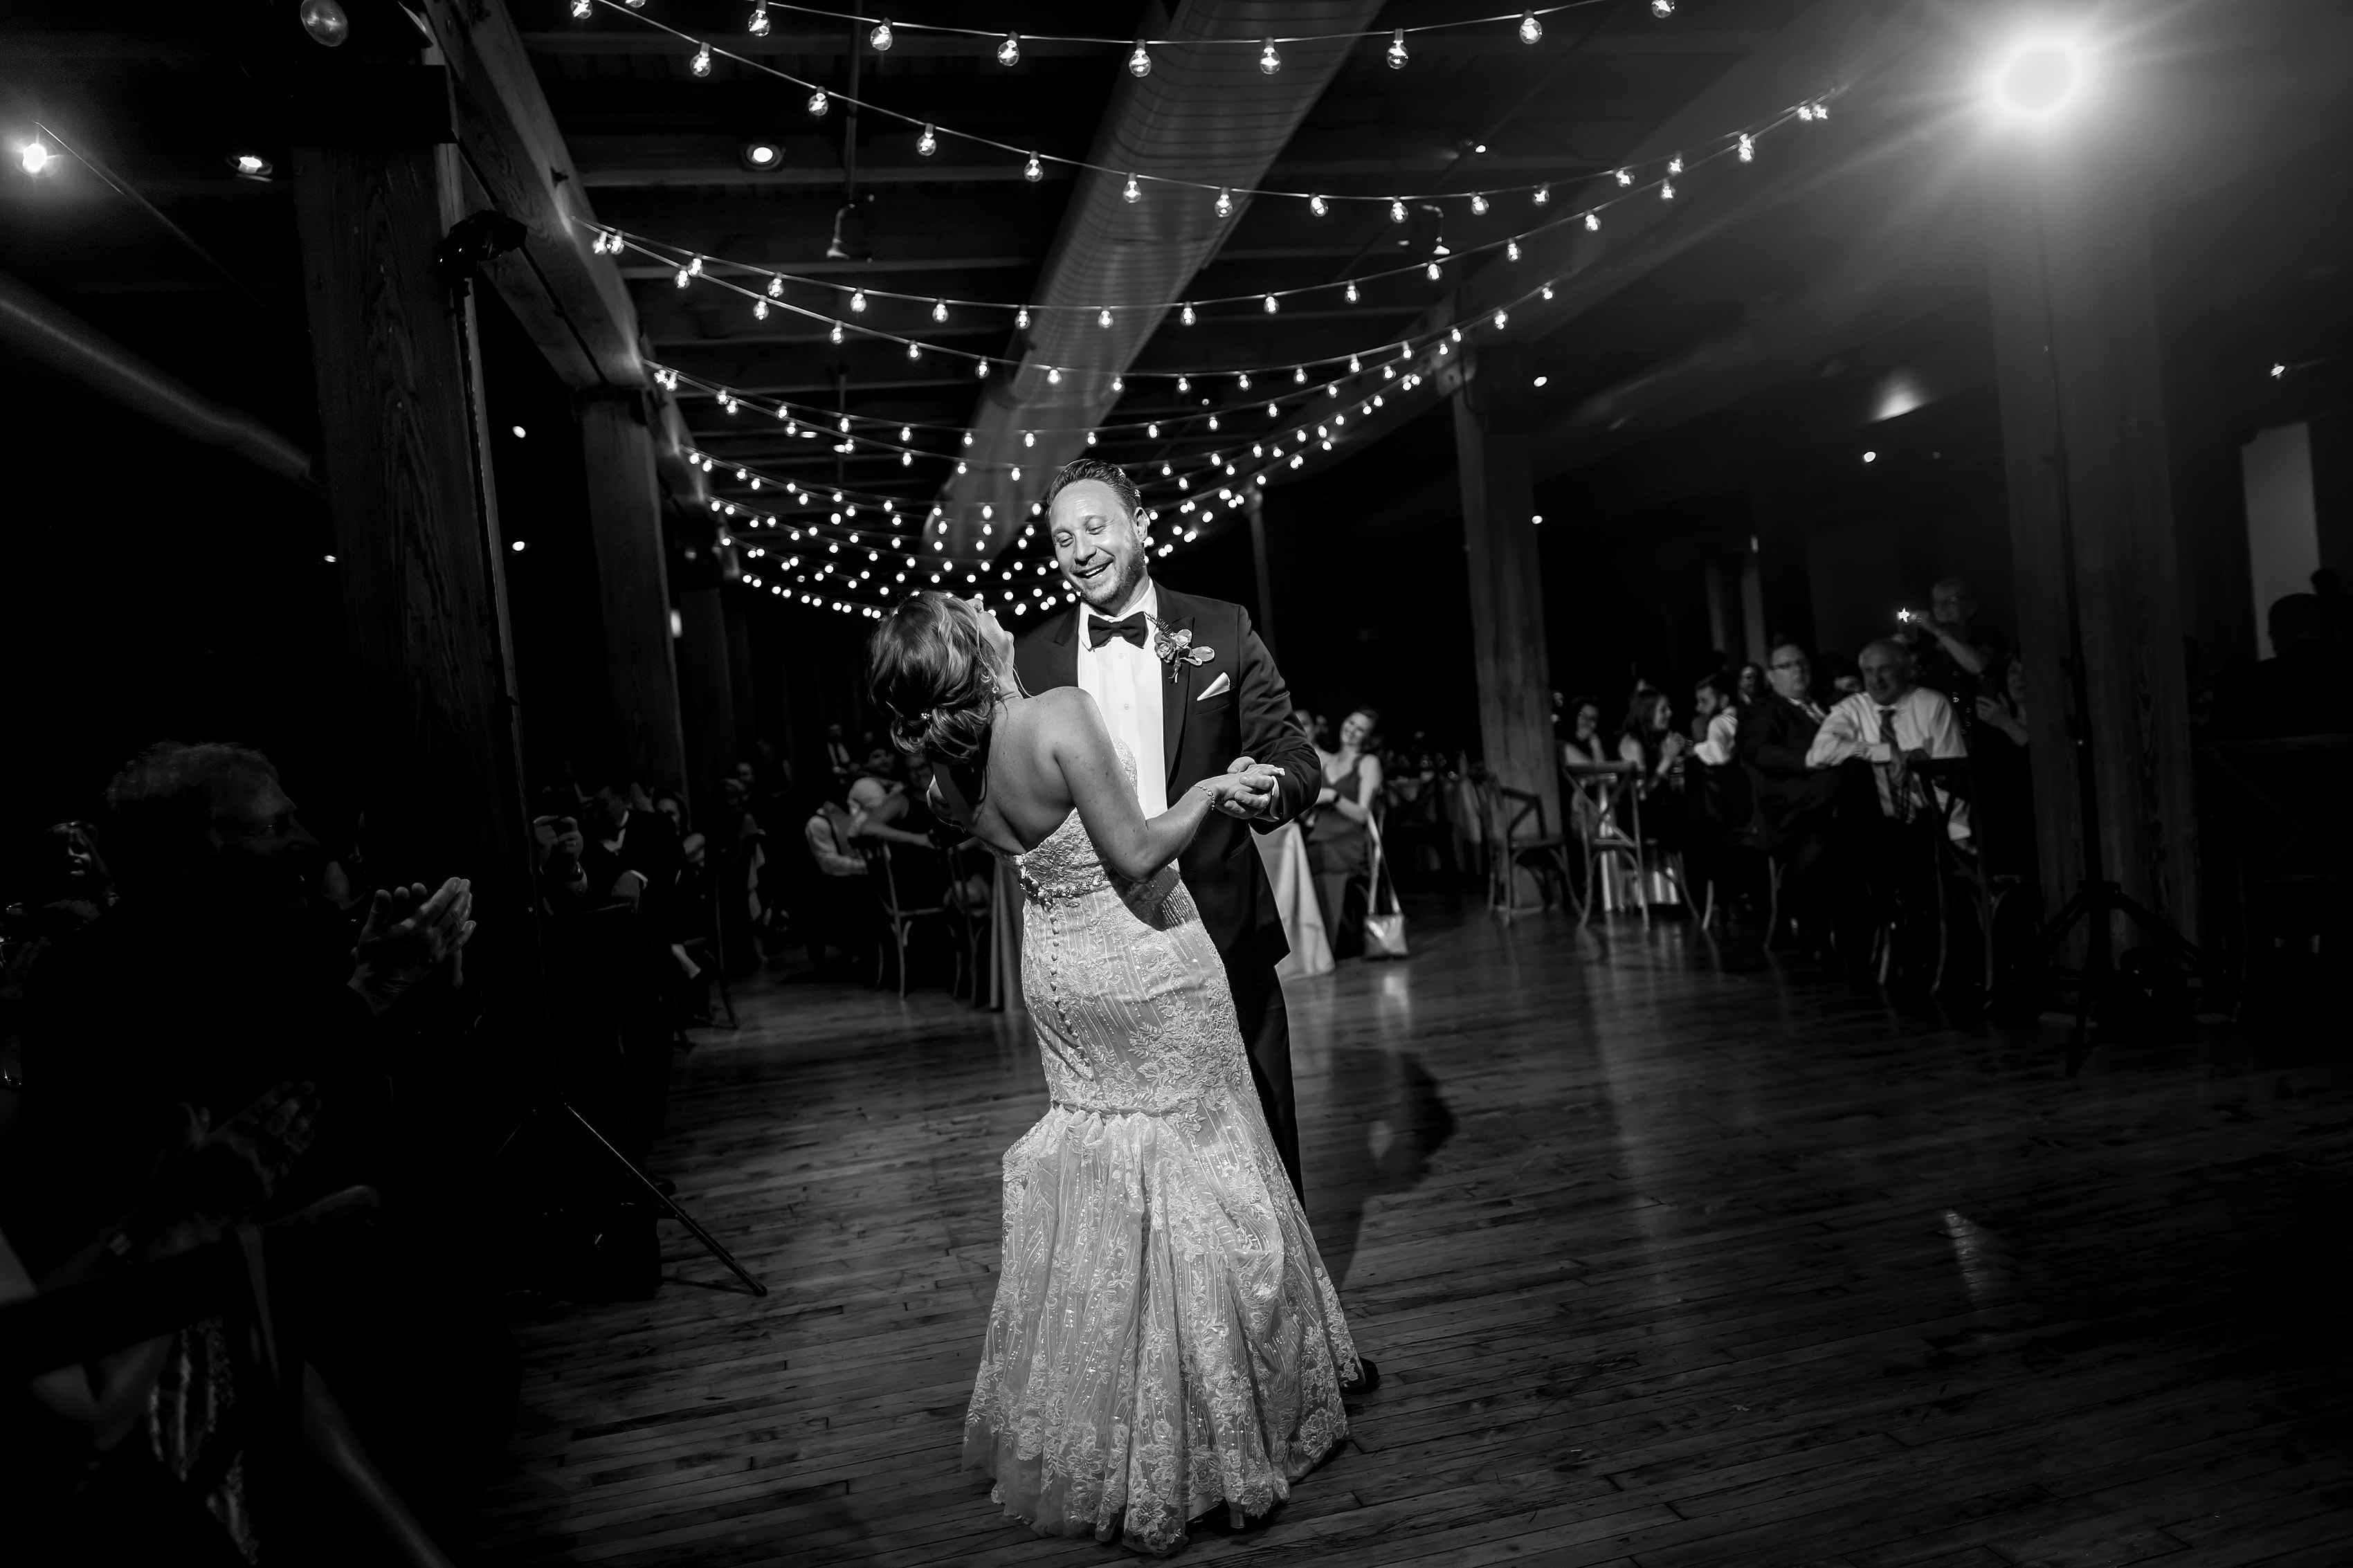 bride and groom share their first dance during wedding reception at Bridgeport Art Center Sculpture Garden in Chicago